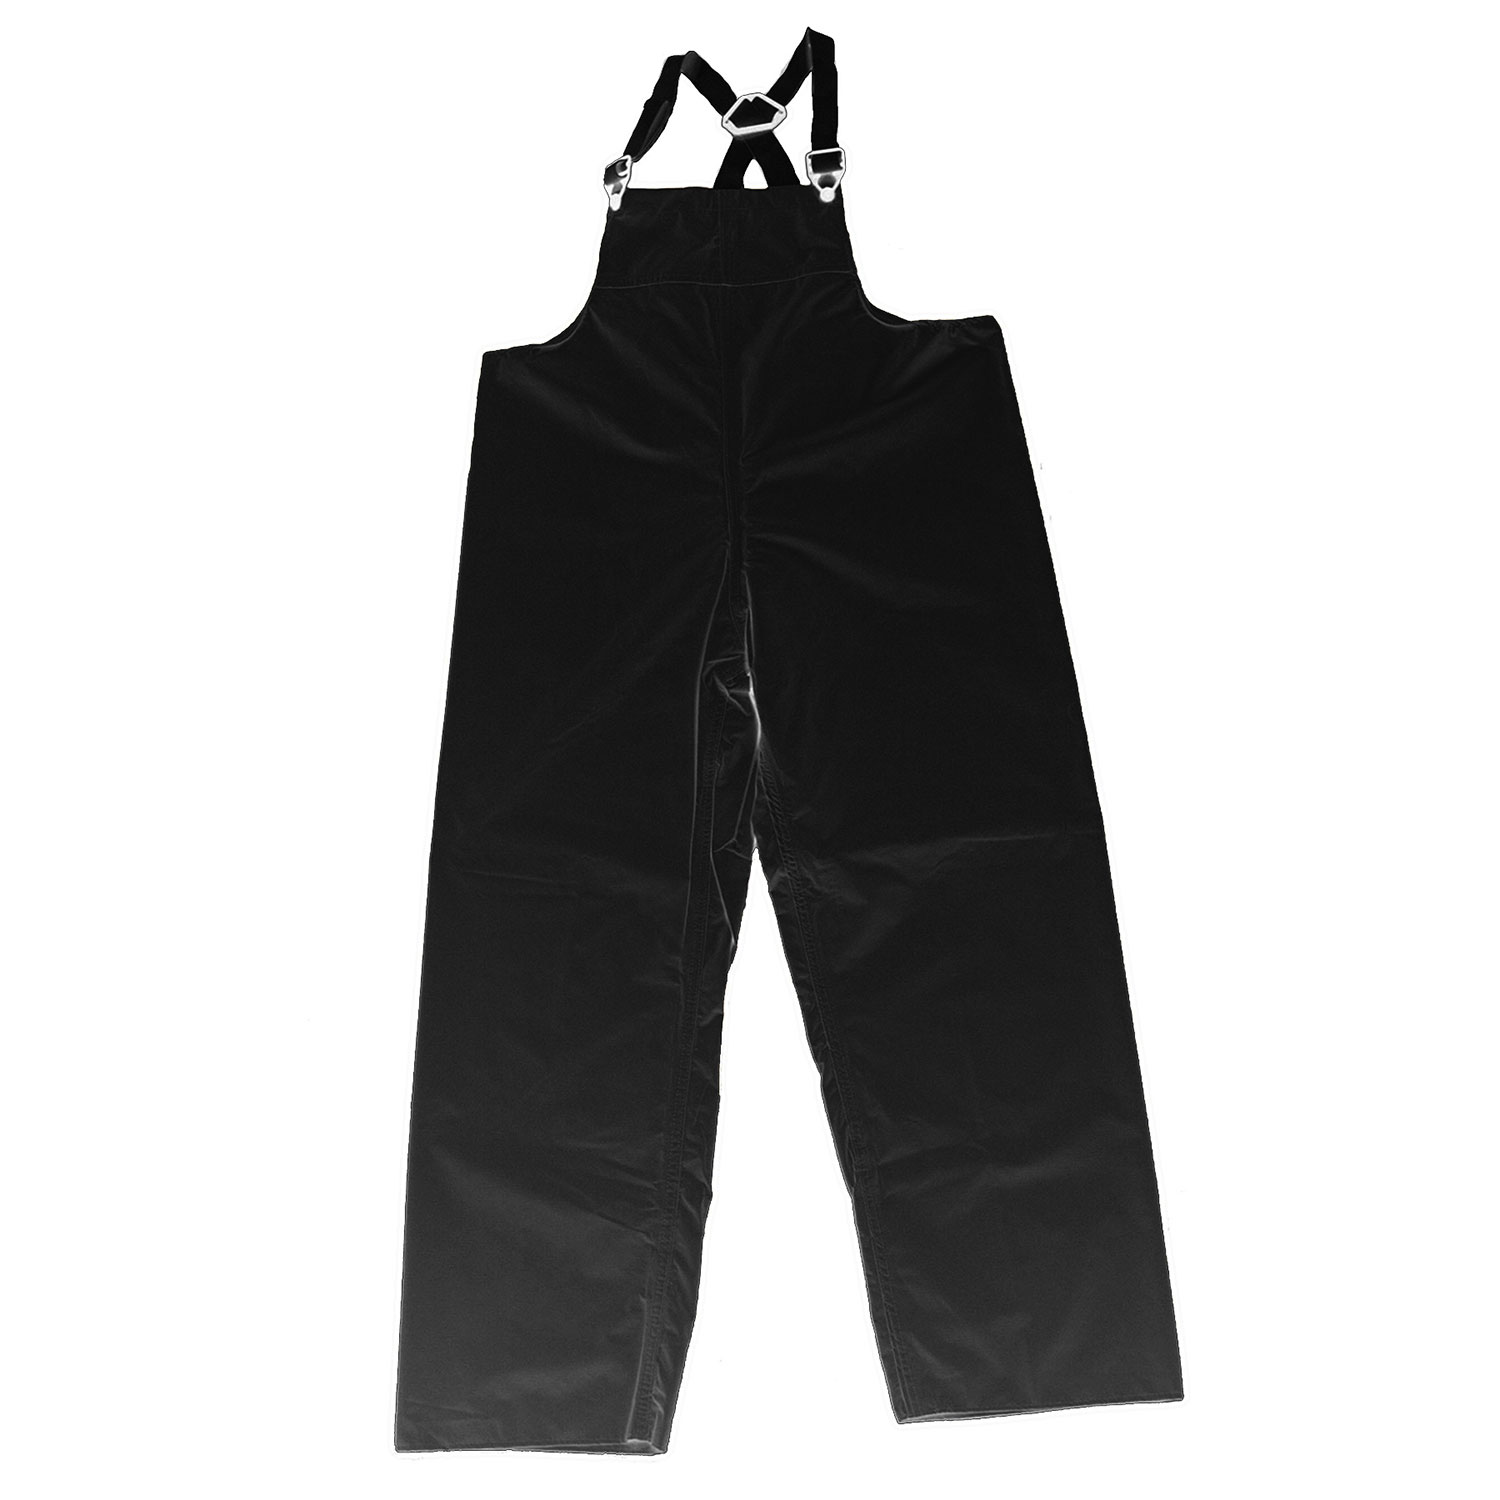 Neese Universal 35 Rain Bib Trousers with Adjustable Straps